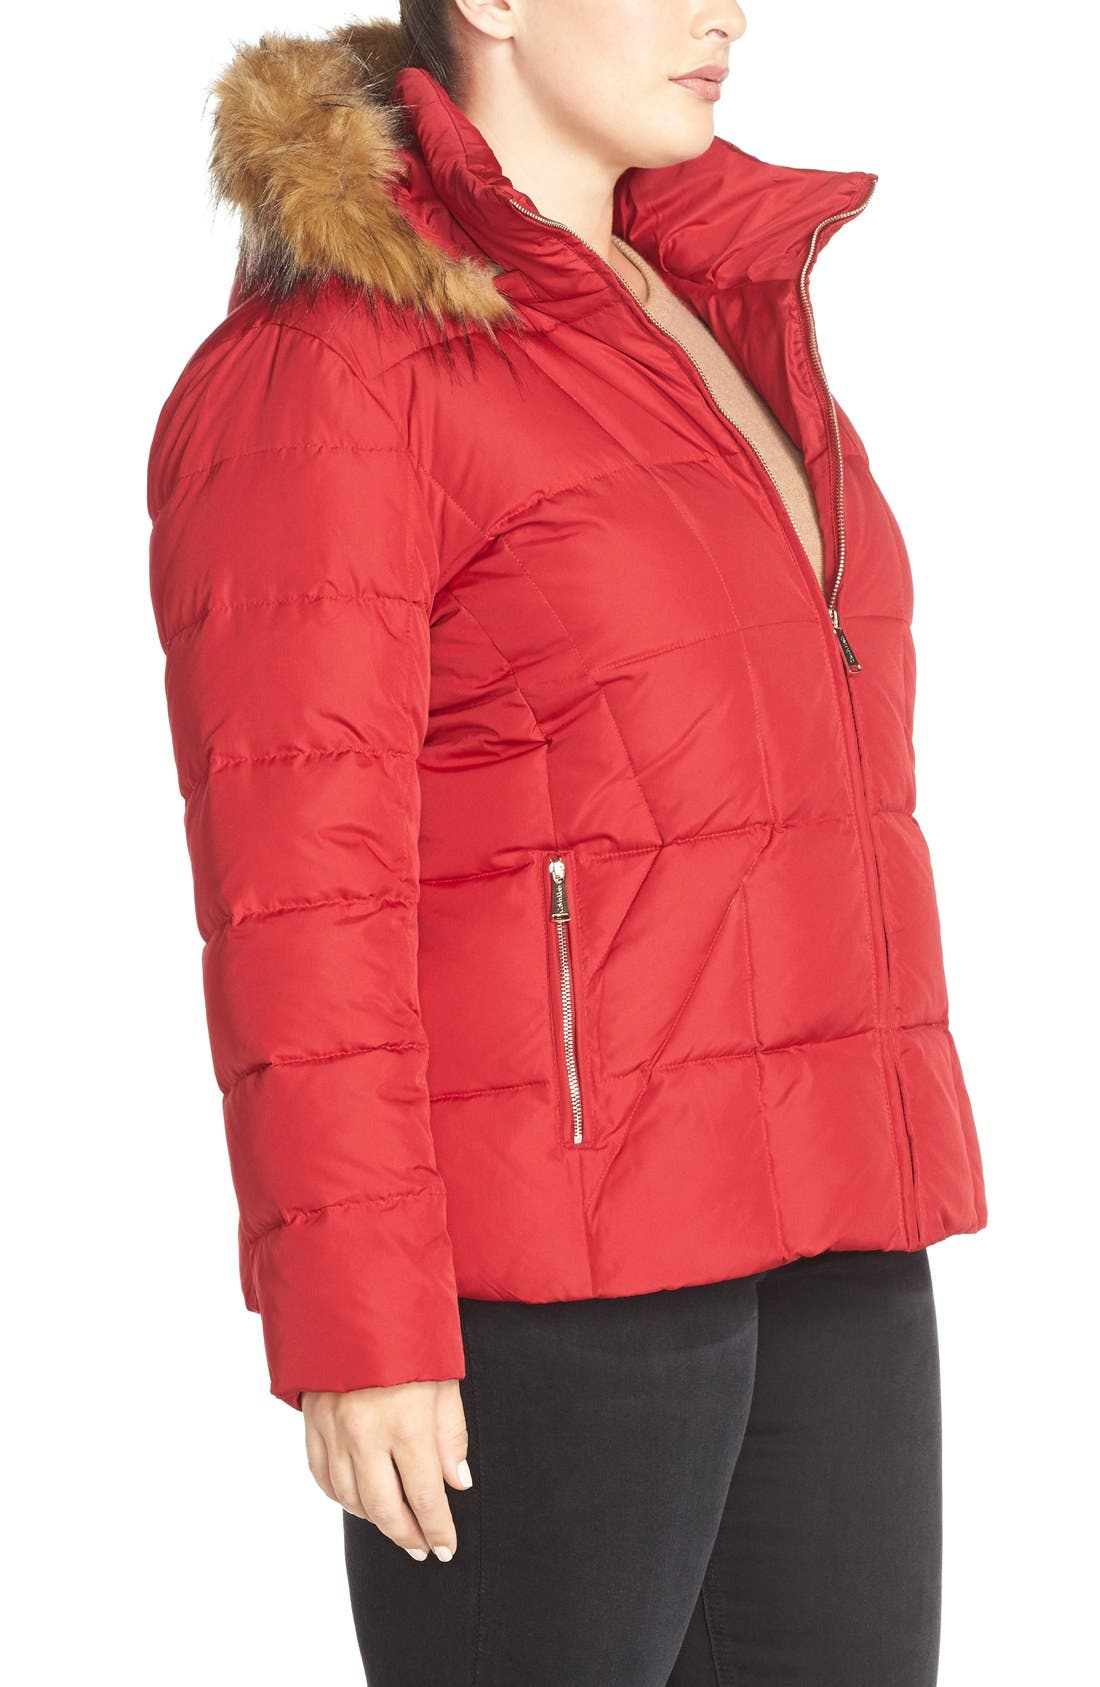 Alternate Image 3  - Calvin Klein Hooded Down & Feather Fill Jacket with Faux Fur Trim (Plus Size)